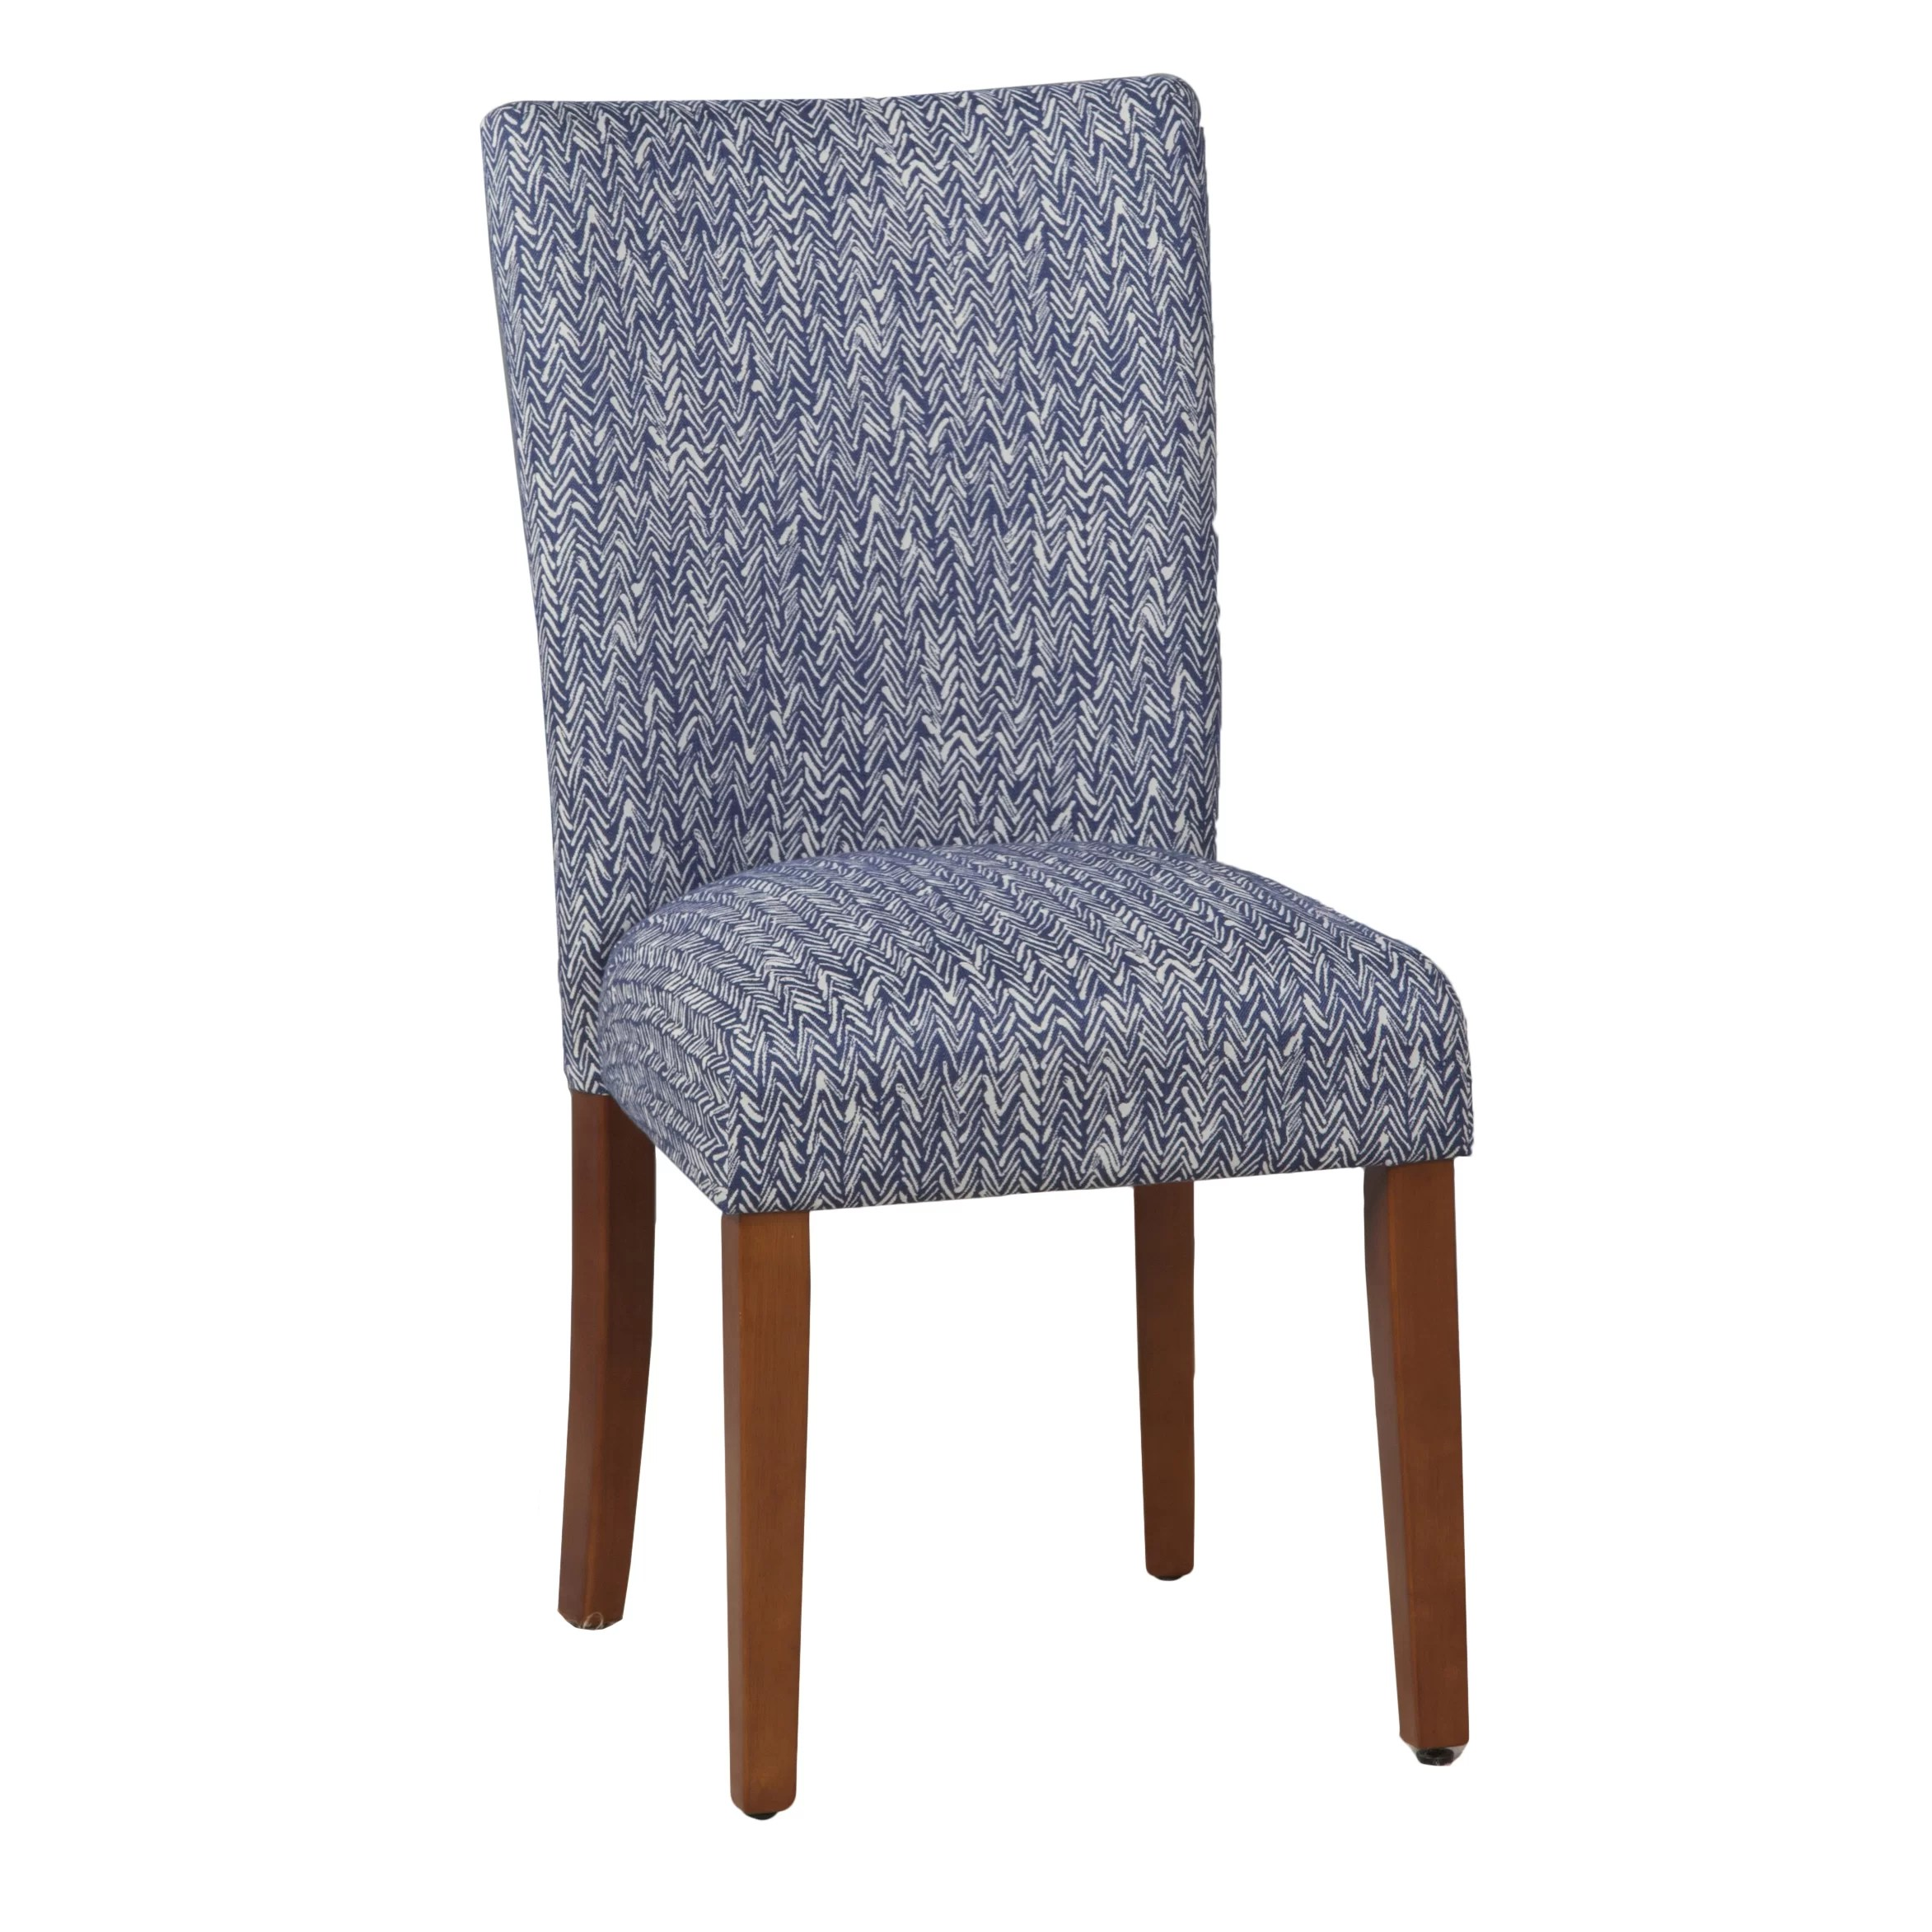 Parson Chair Homepop Upholstered Parsons Chair In Blue And Reviews Wayfair